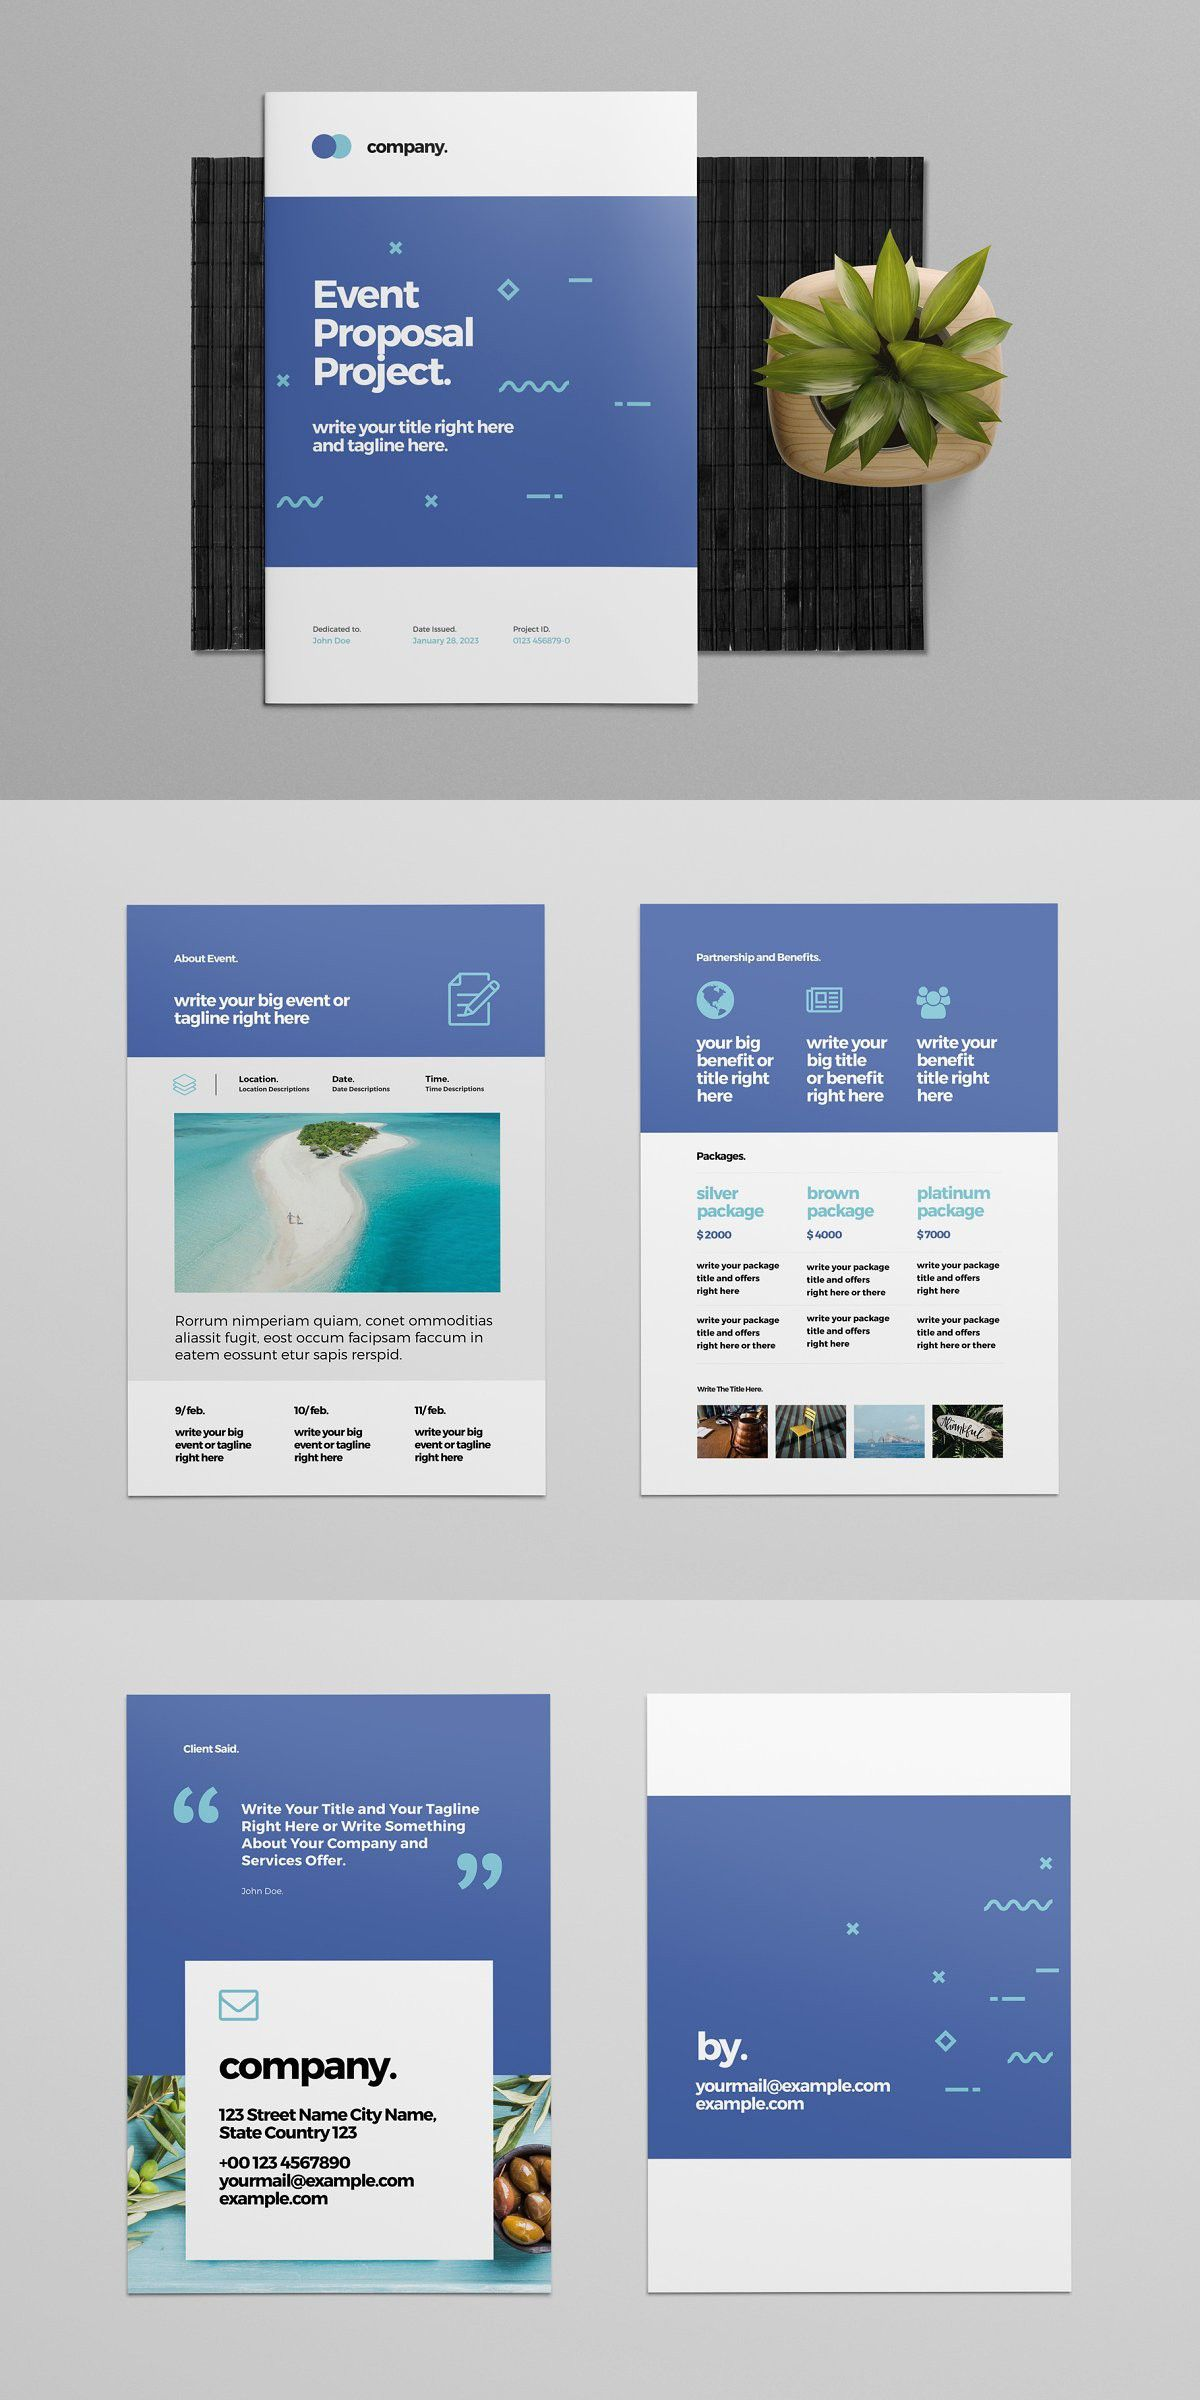 Event Proposal Layout In 2020 Event Proposal Web Design Proposal Indesign Magazine Templates